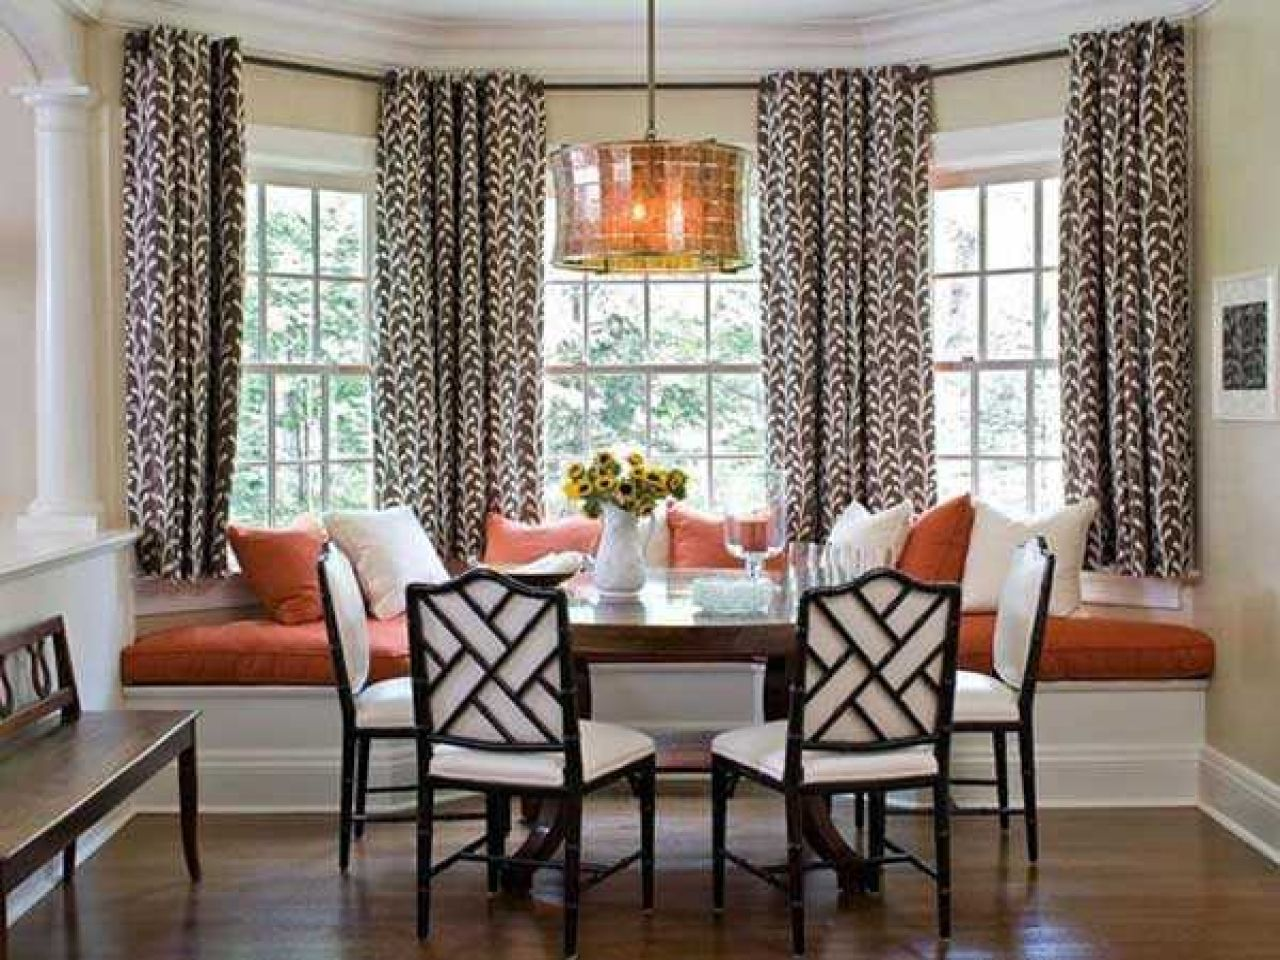 Dining Room With Bay Window Seat Dining Room With Sitting Area Dining Room With Bay Window Bay Wind Window Seat Kitchen Dining Room Windows Living Room Windows